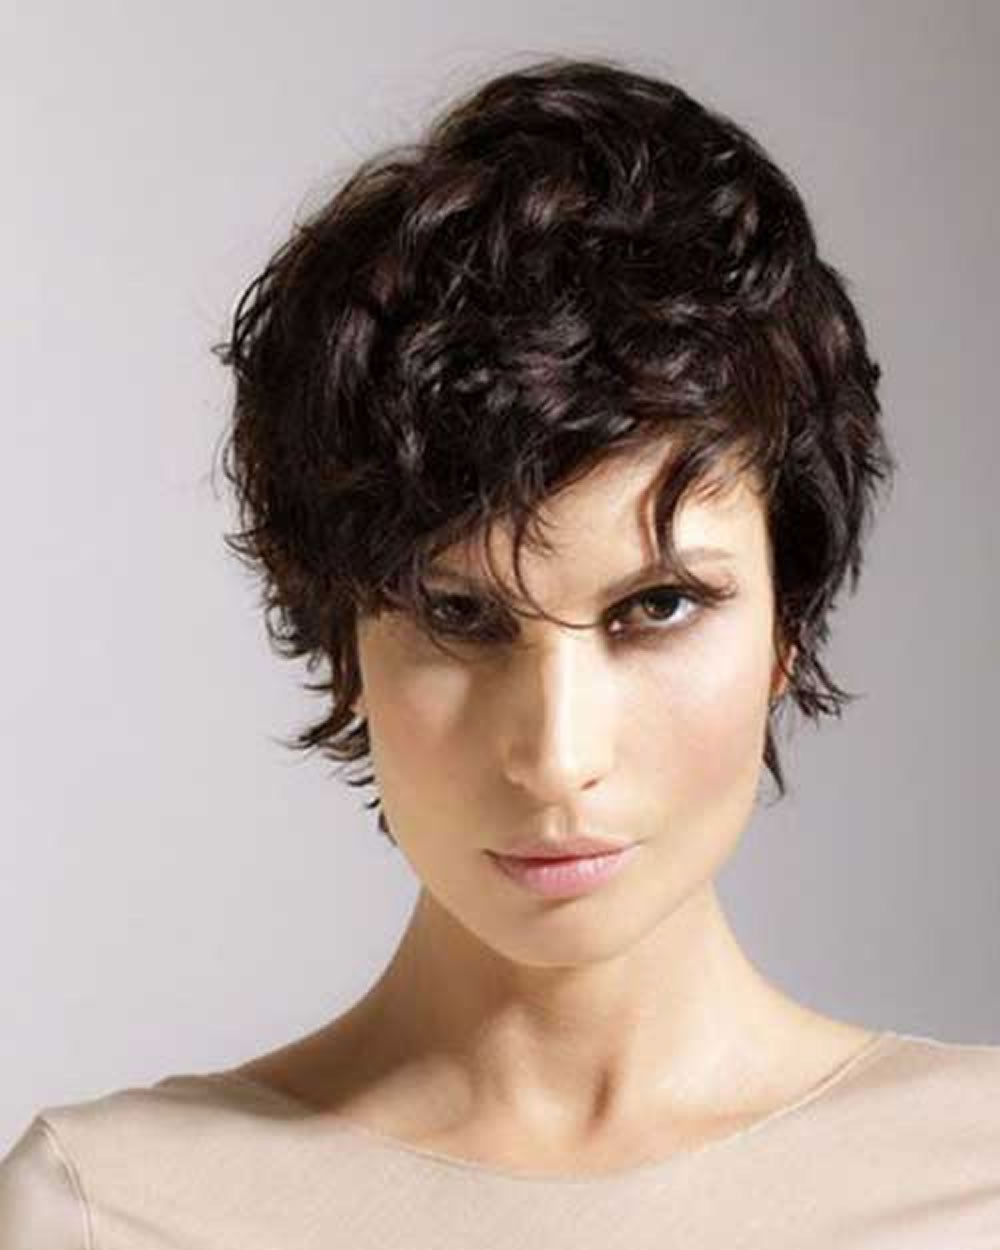 Best ideas about Curly Pixie Hairstyles . Save or Pin Curly Pixie Haircuts for 2018 & Pixie Short Hairstyle Now.